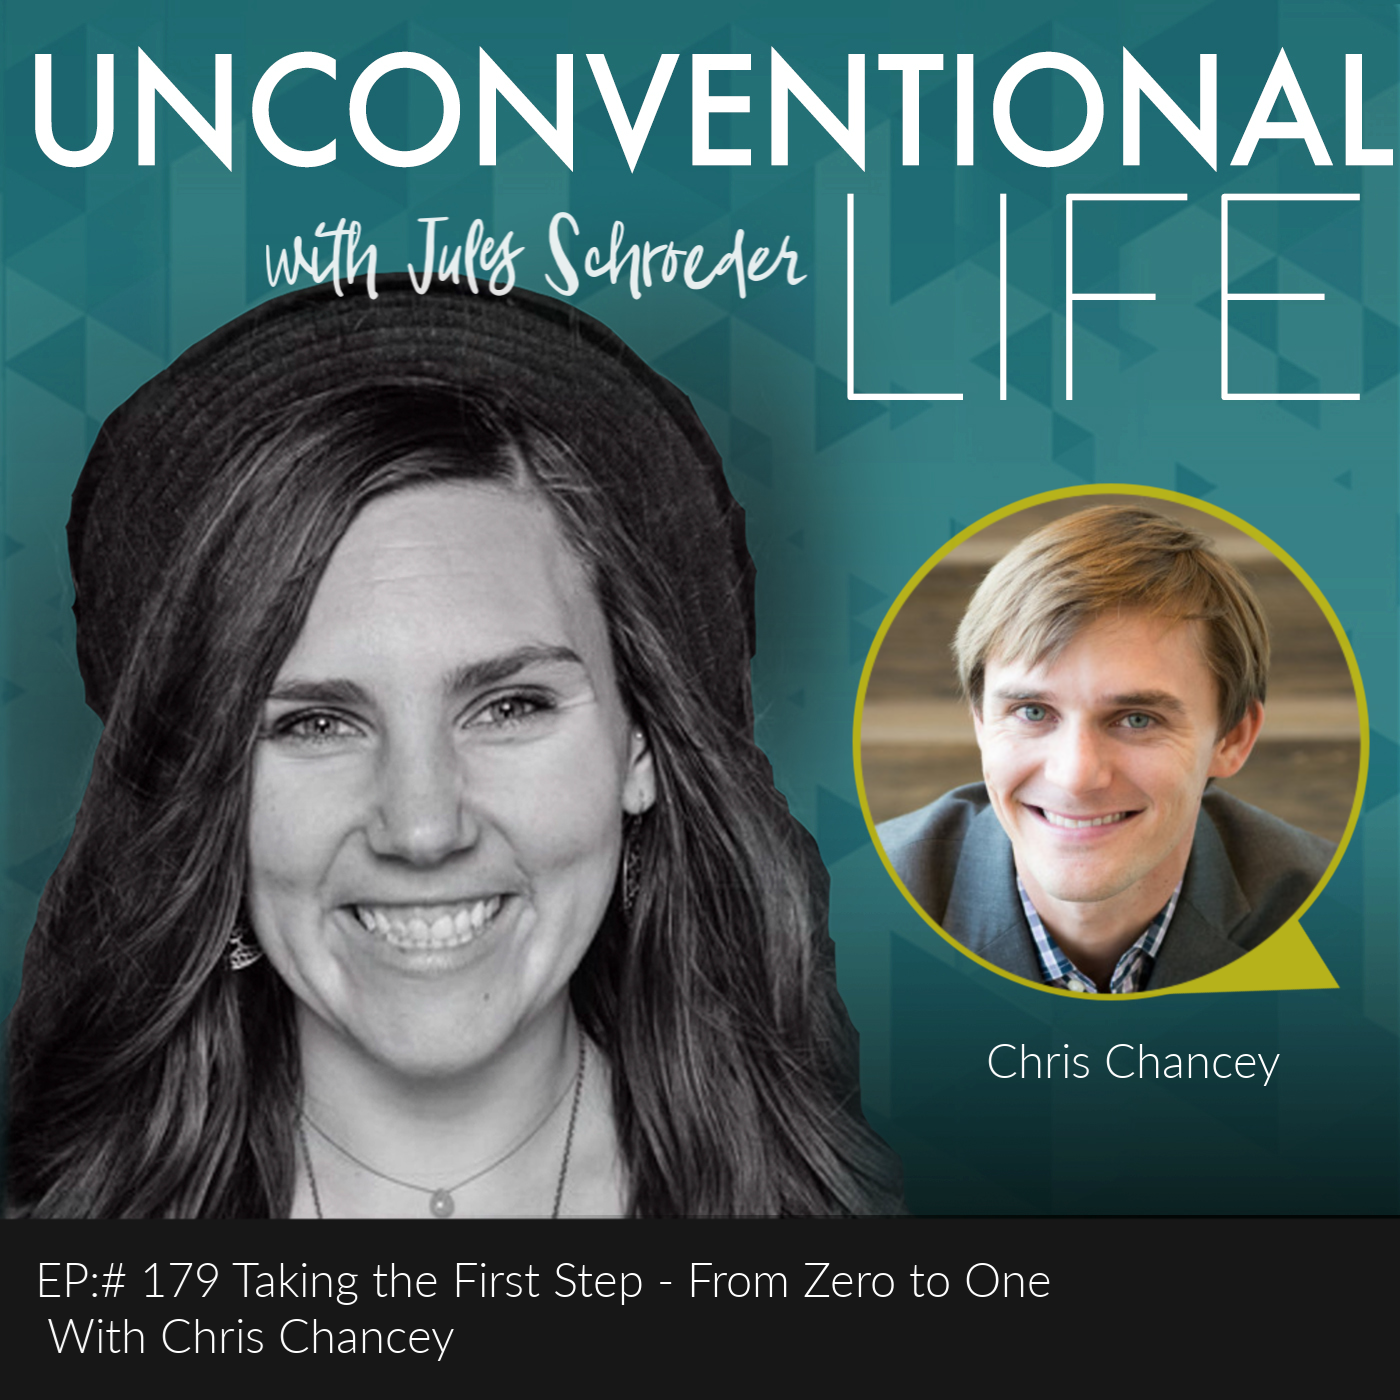 P:# 179 Taking the First Step - From Zero to One  With Chris Chancey show art